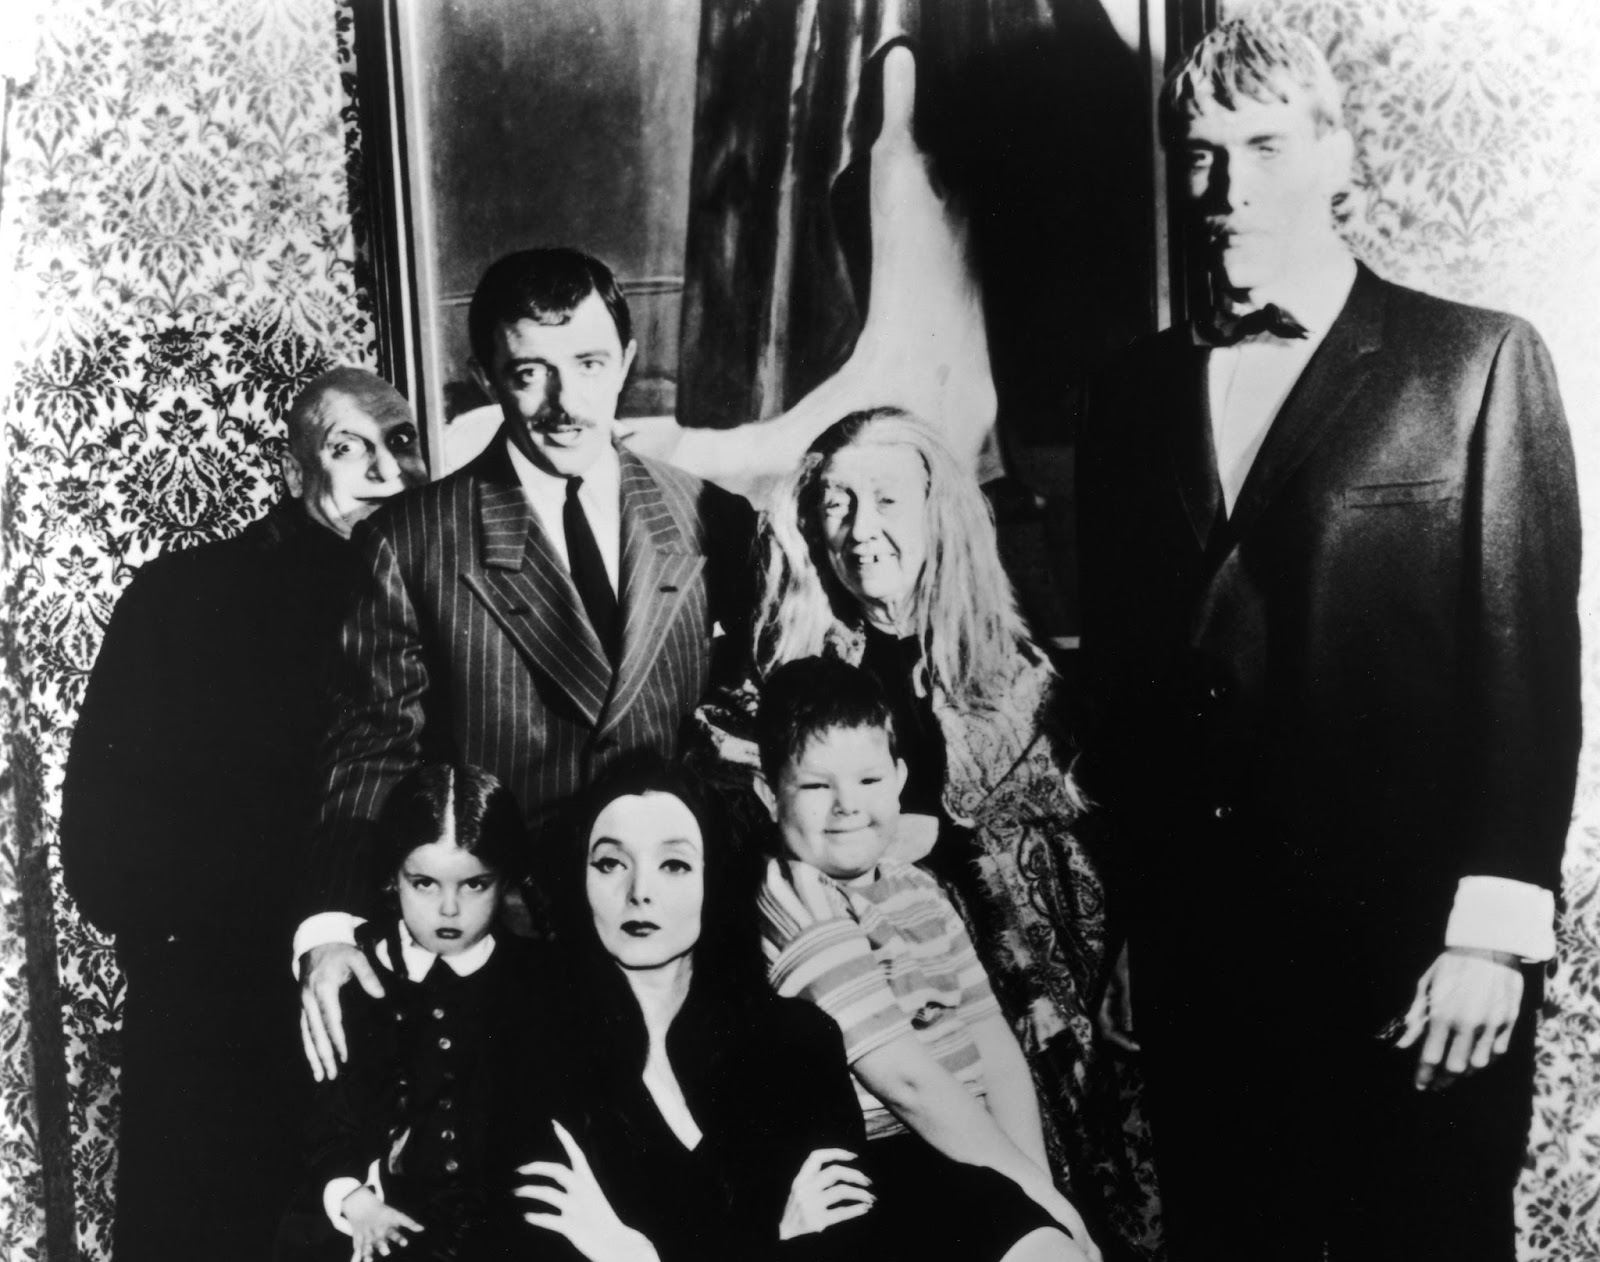 003-the-addams-family-theredlist